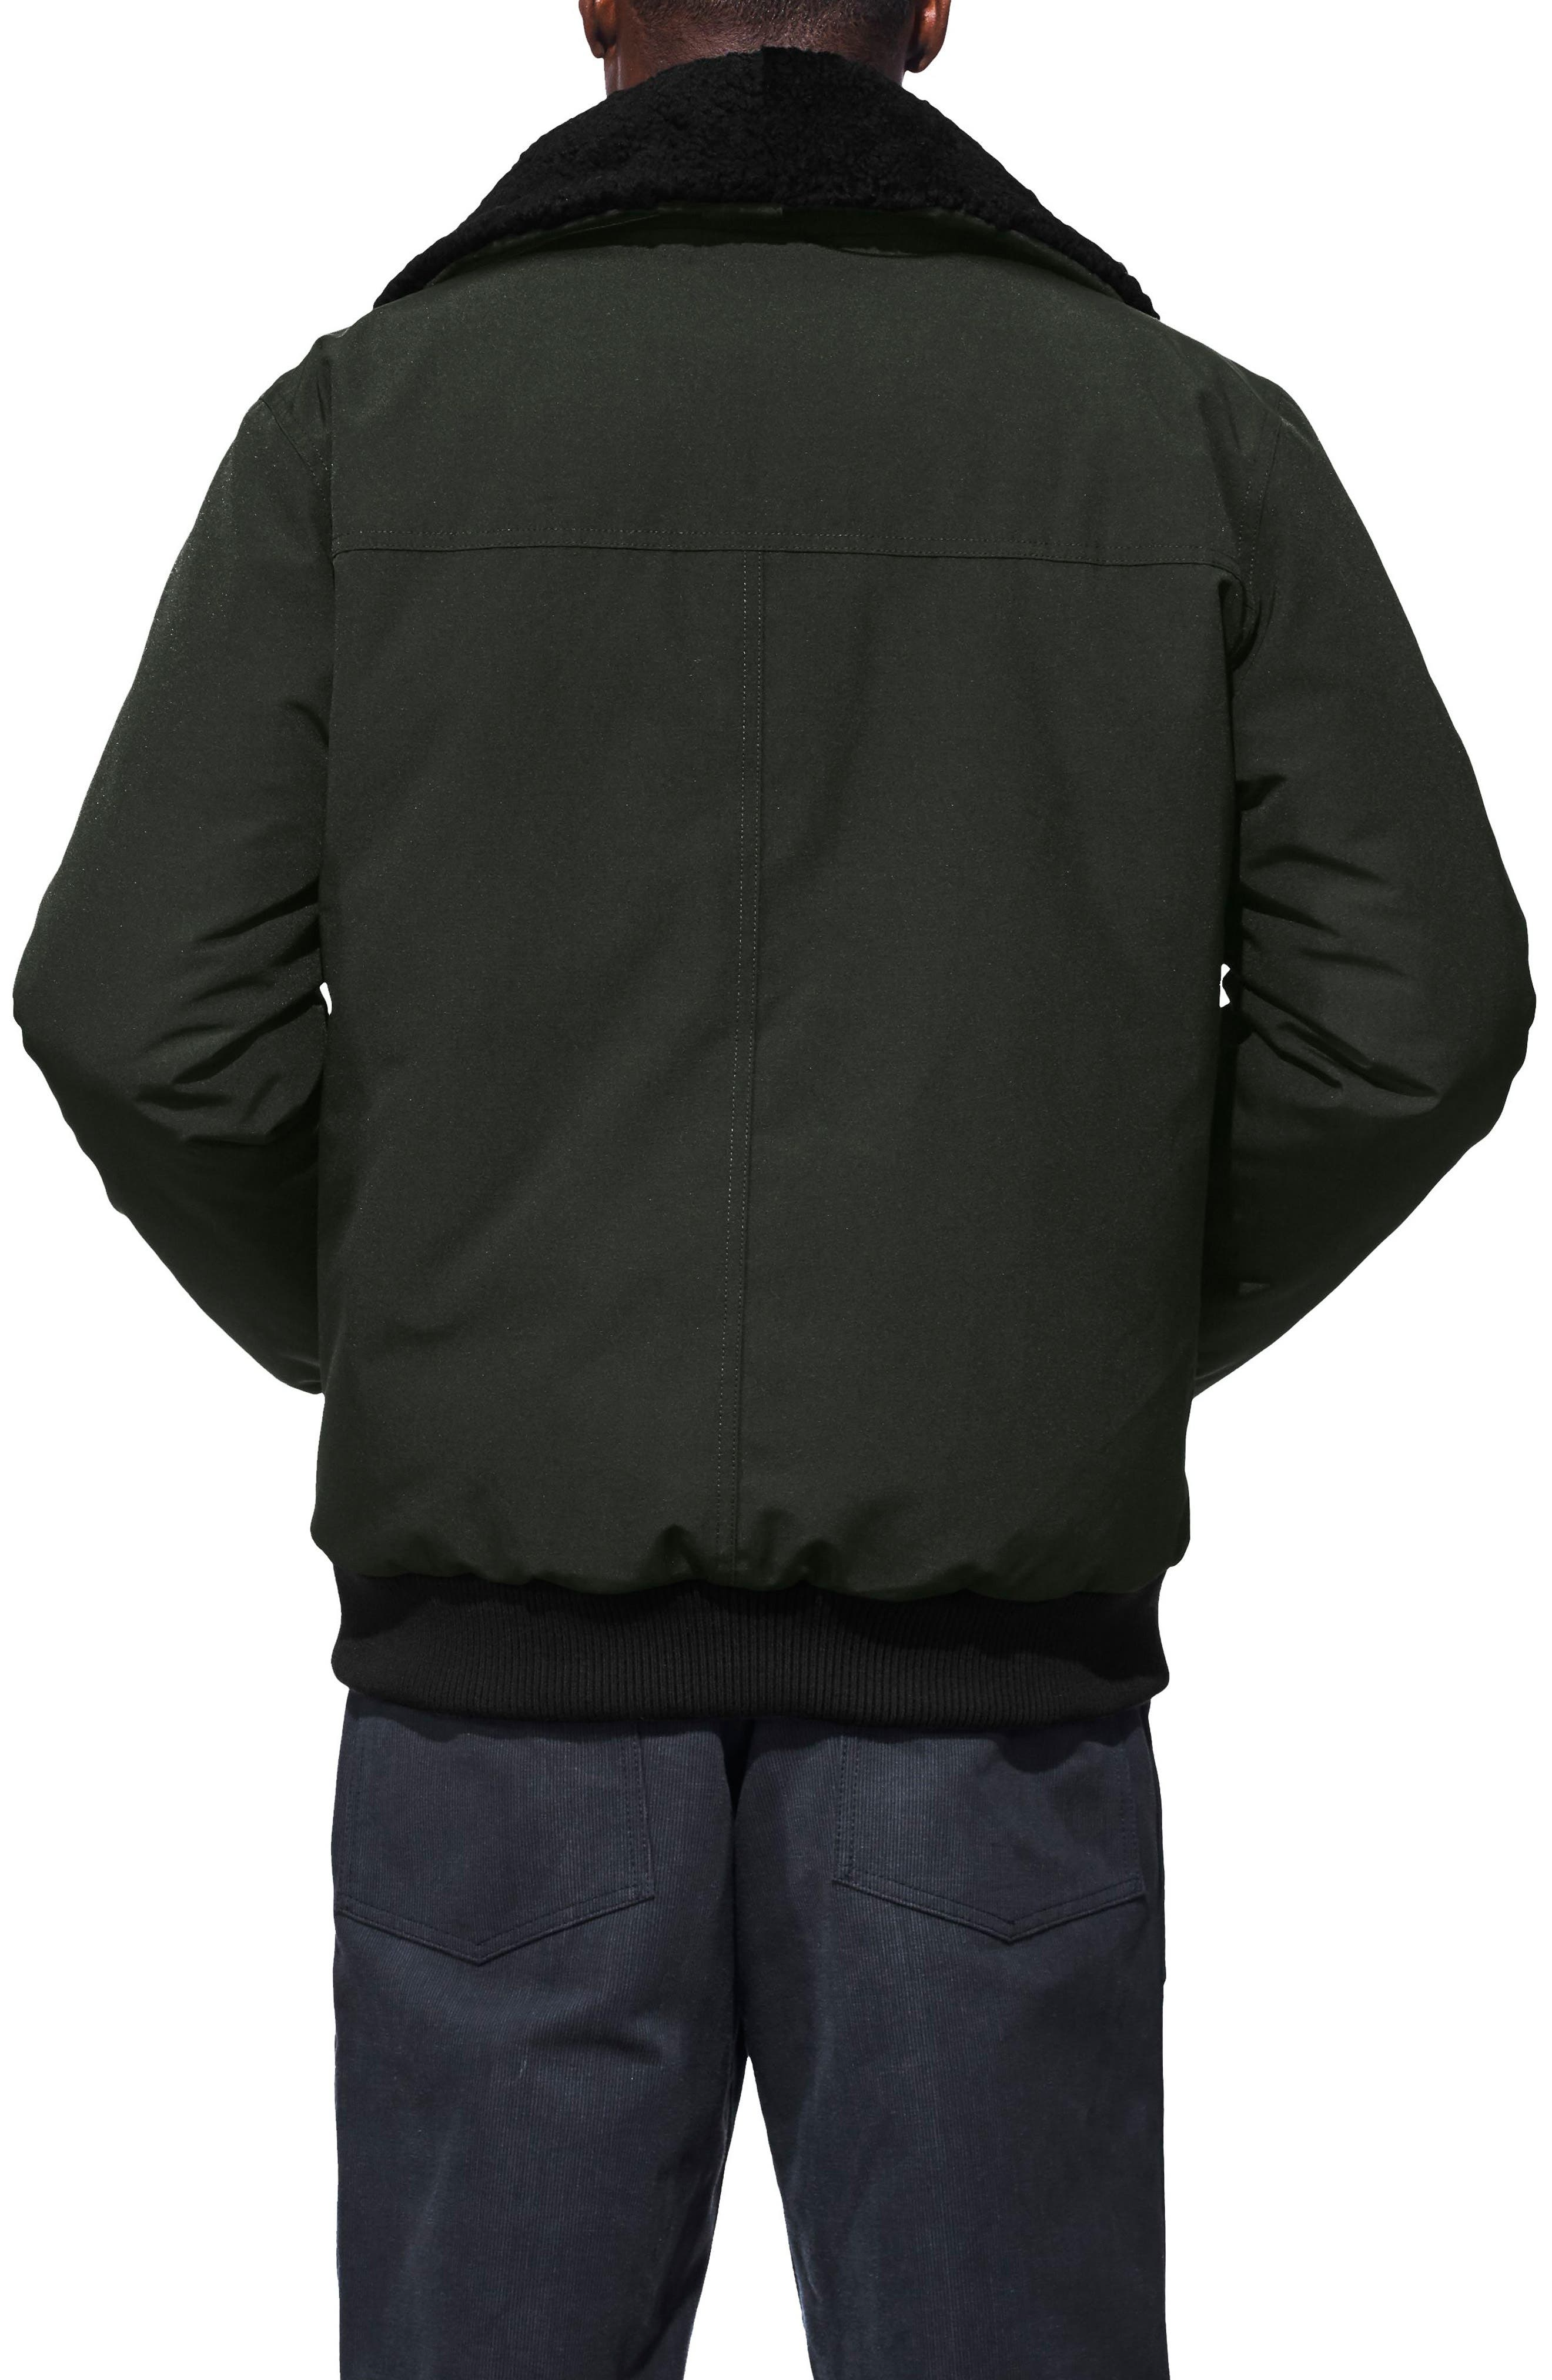 CANADA GOOSE,                             Bromley Slim Fit Down Bomber Jacket with Genuine Shearling Collar,                             Alternate thumbnail 2, color,                             VOLCANO